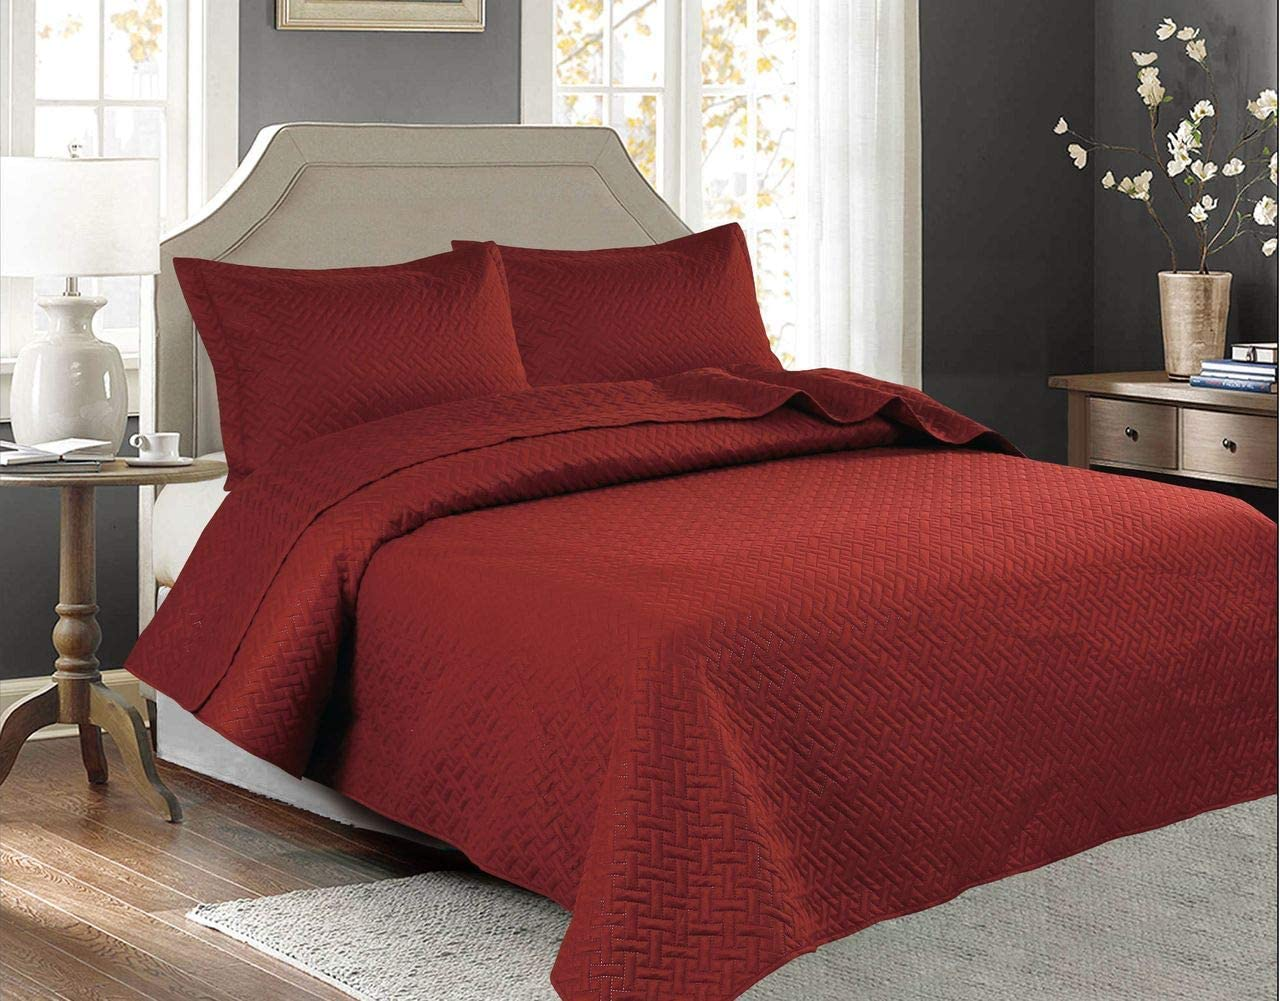 Legacy Decor 3 PCSSquared Stitched Pinsonic Reversible Lightweight All Season Bedspread Quilt Coverlet Oversized, King Size, Brick Color